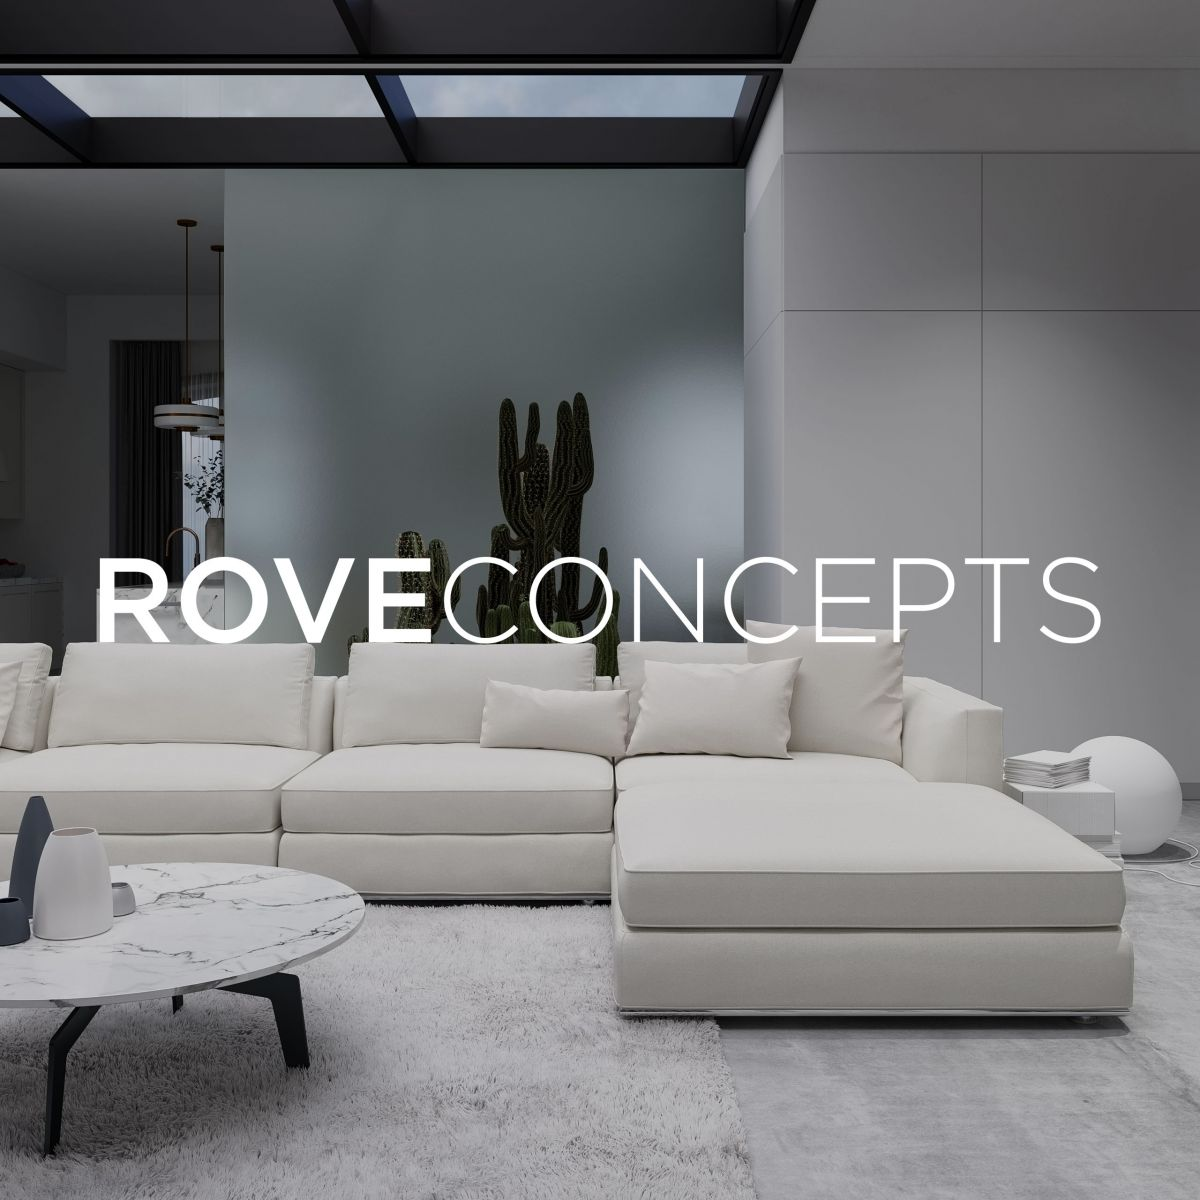 About Rove - Rove Concepts